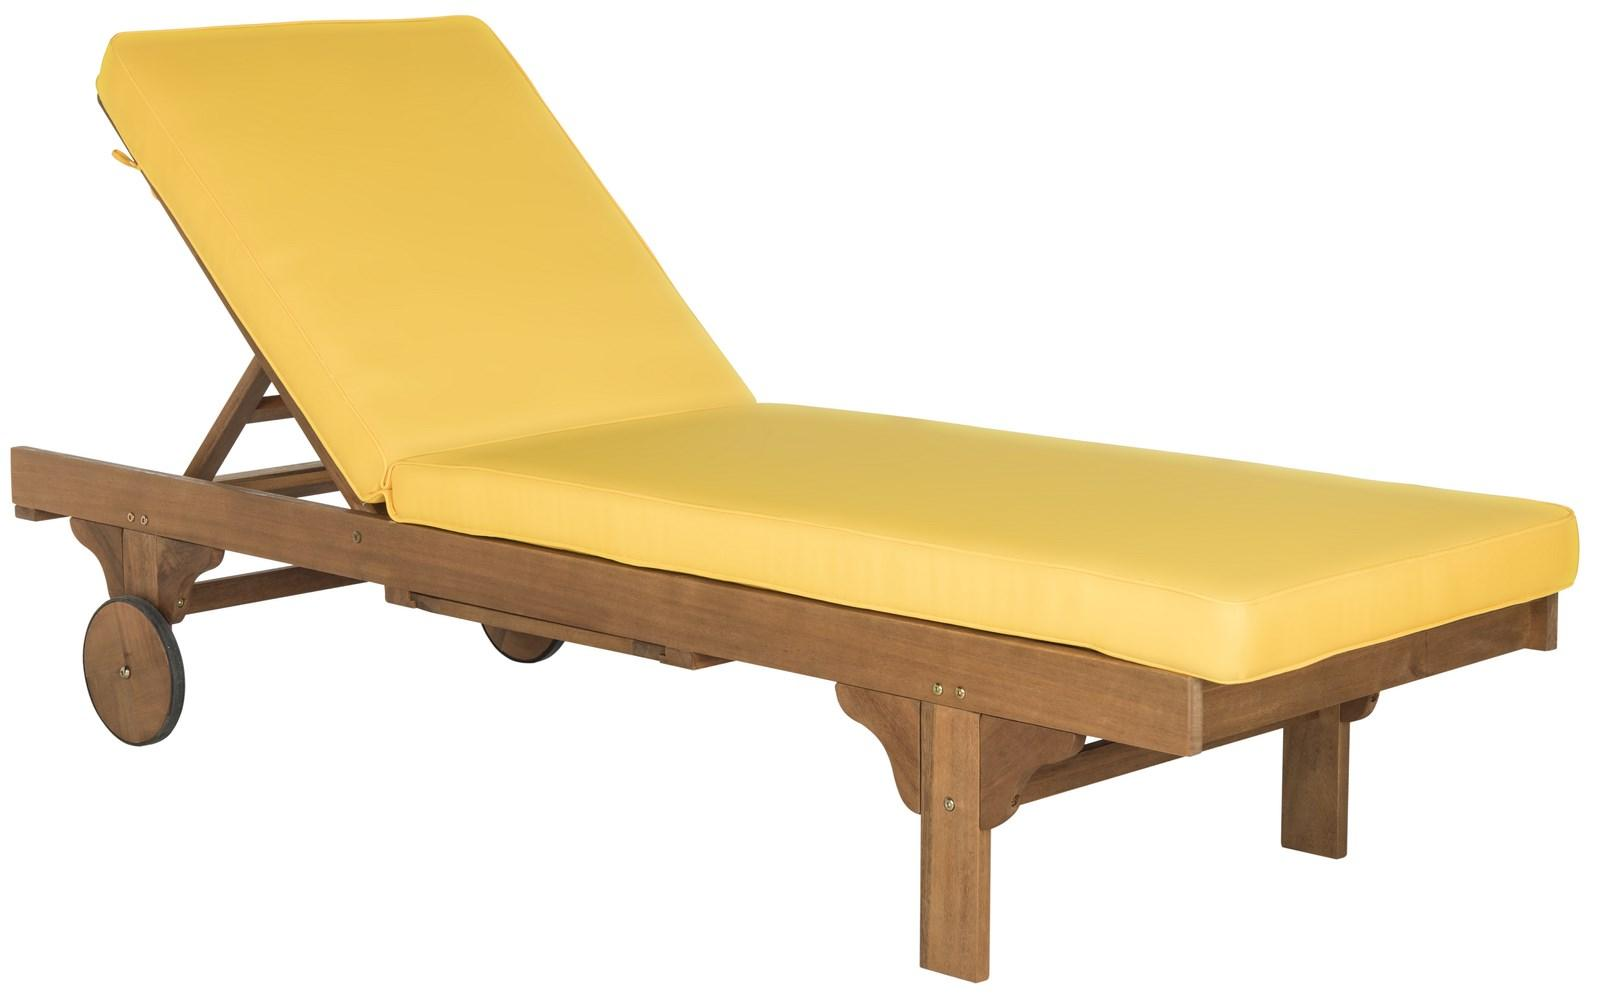 NEWPORT LOUNGE CHAIR PAT7022A SUN LOUNGERS